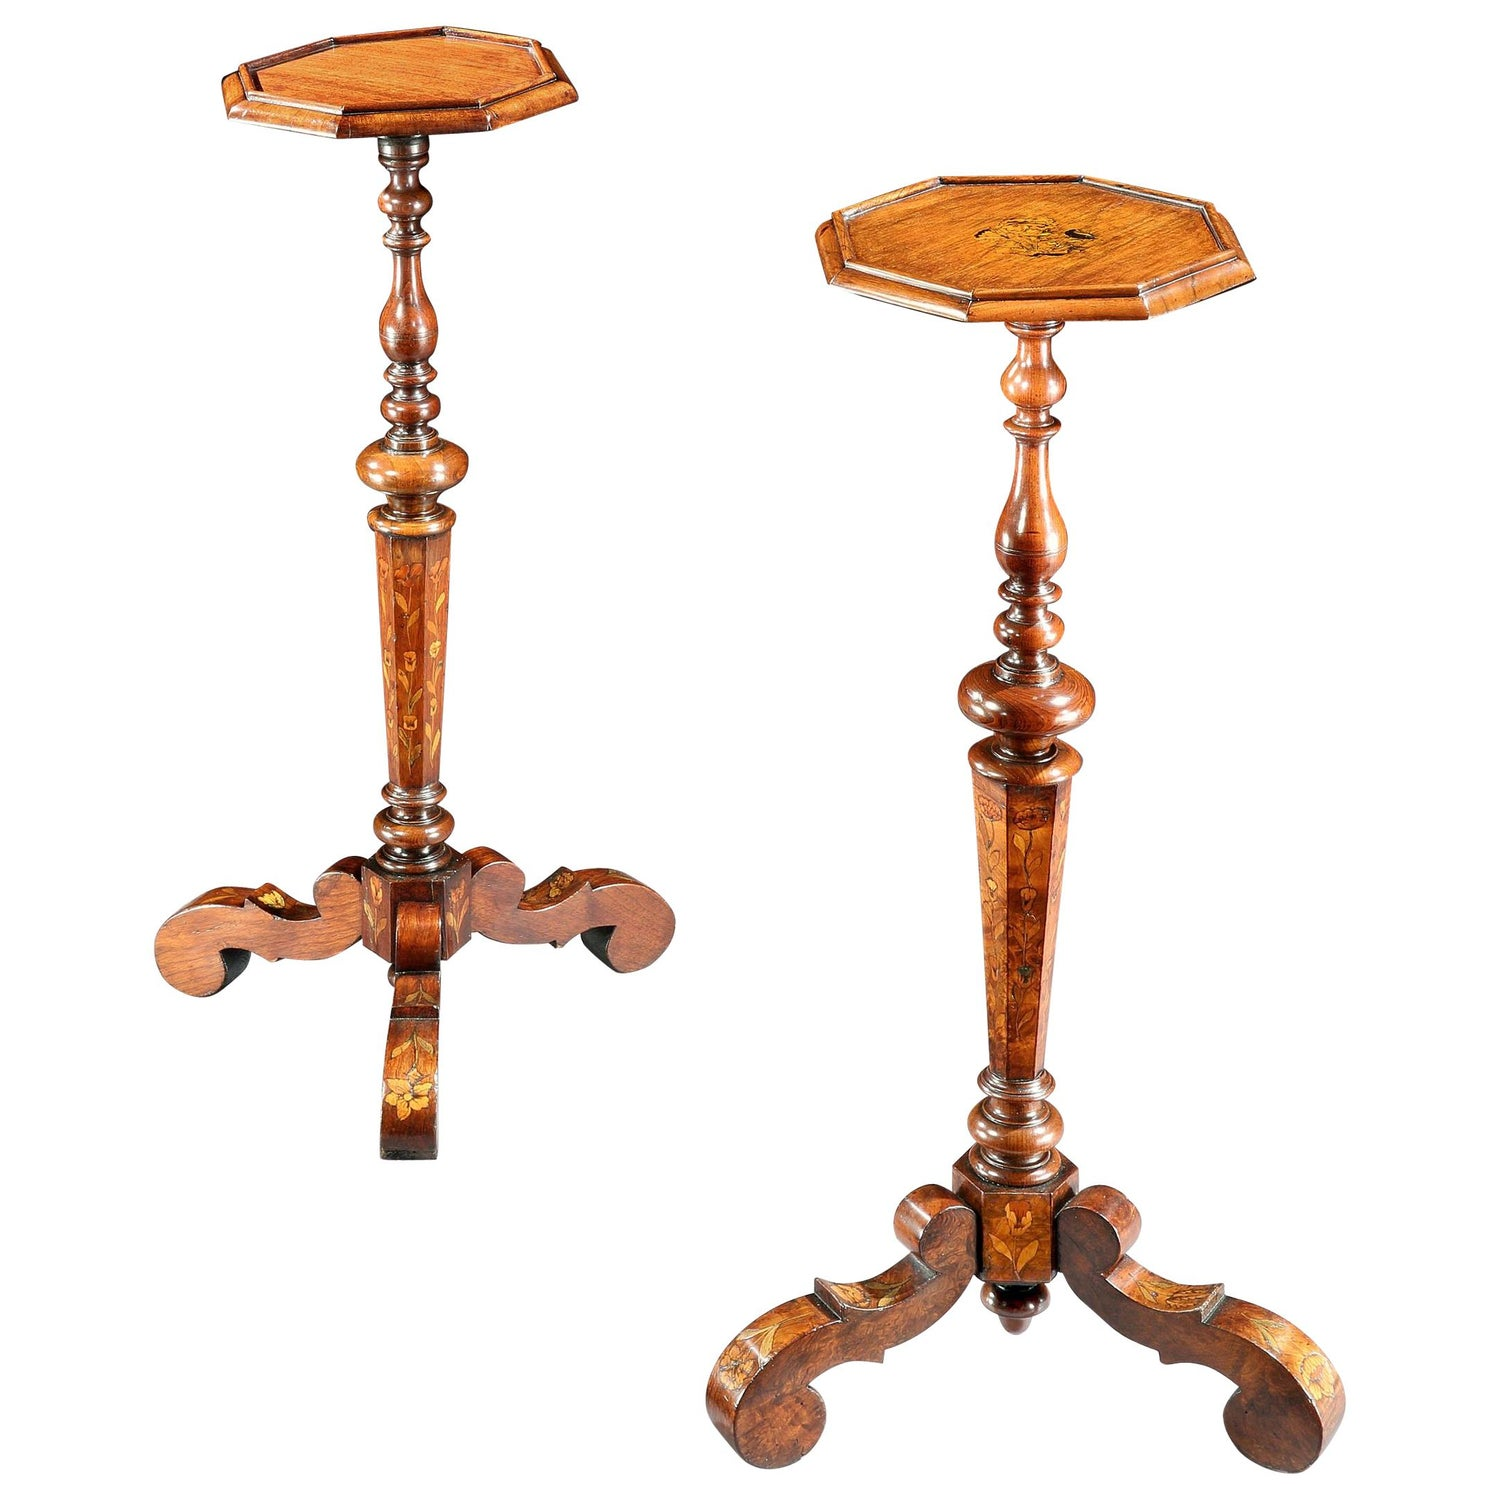 Near Pair of Candle Stands or Torchères, Late 17th Century, English